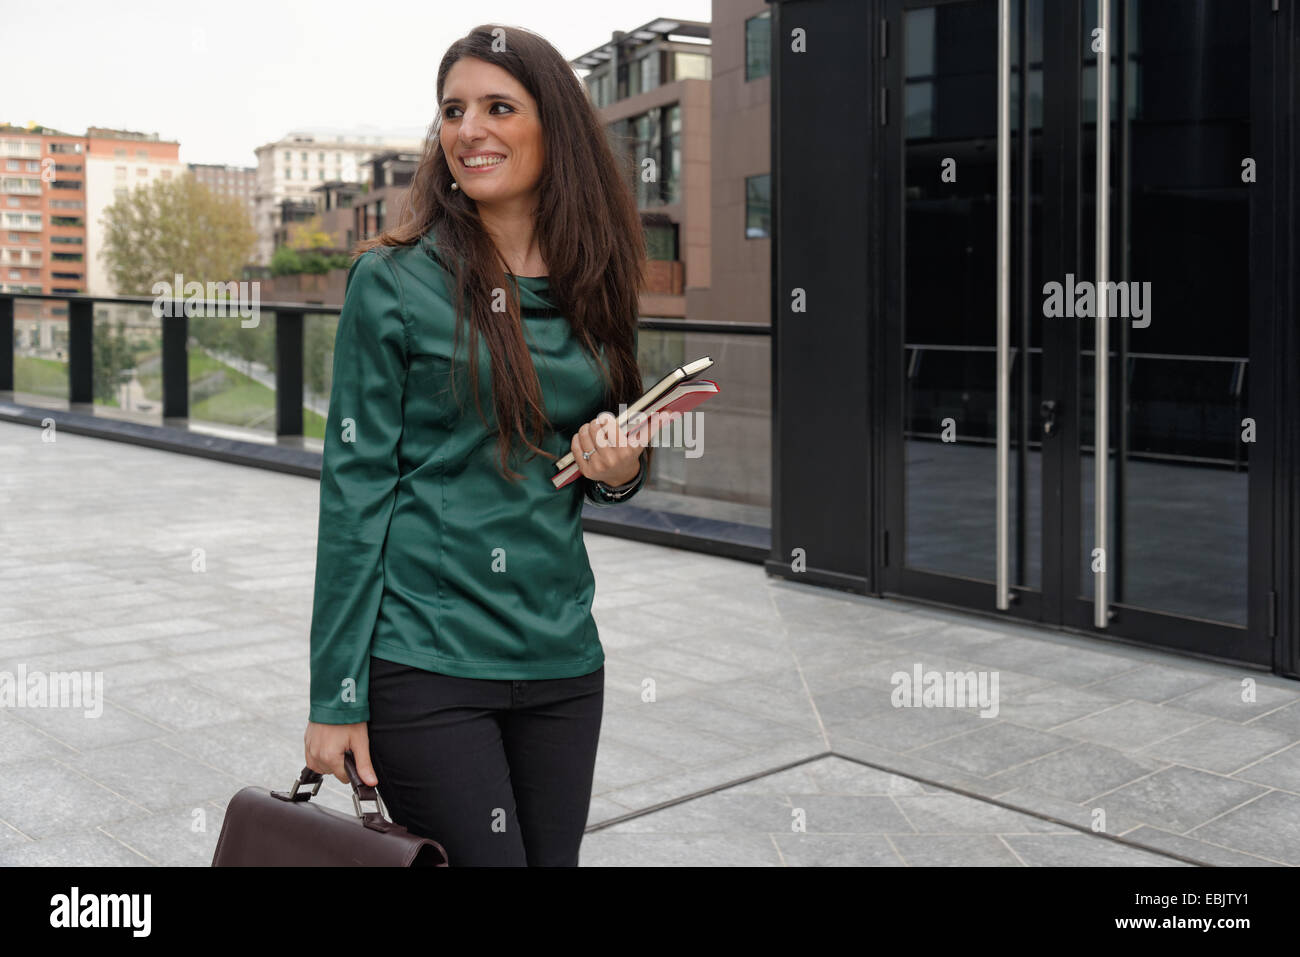 Young professional woman walking with briefcase - Stock Image